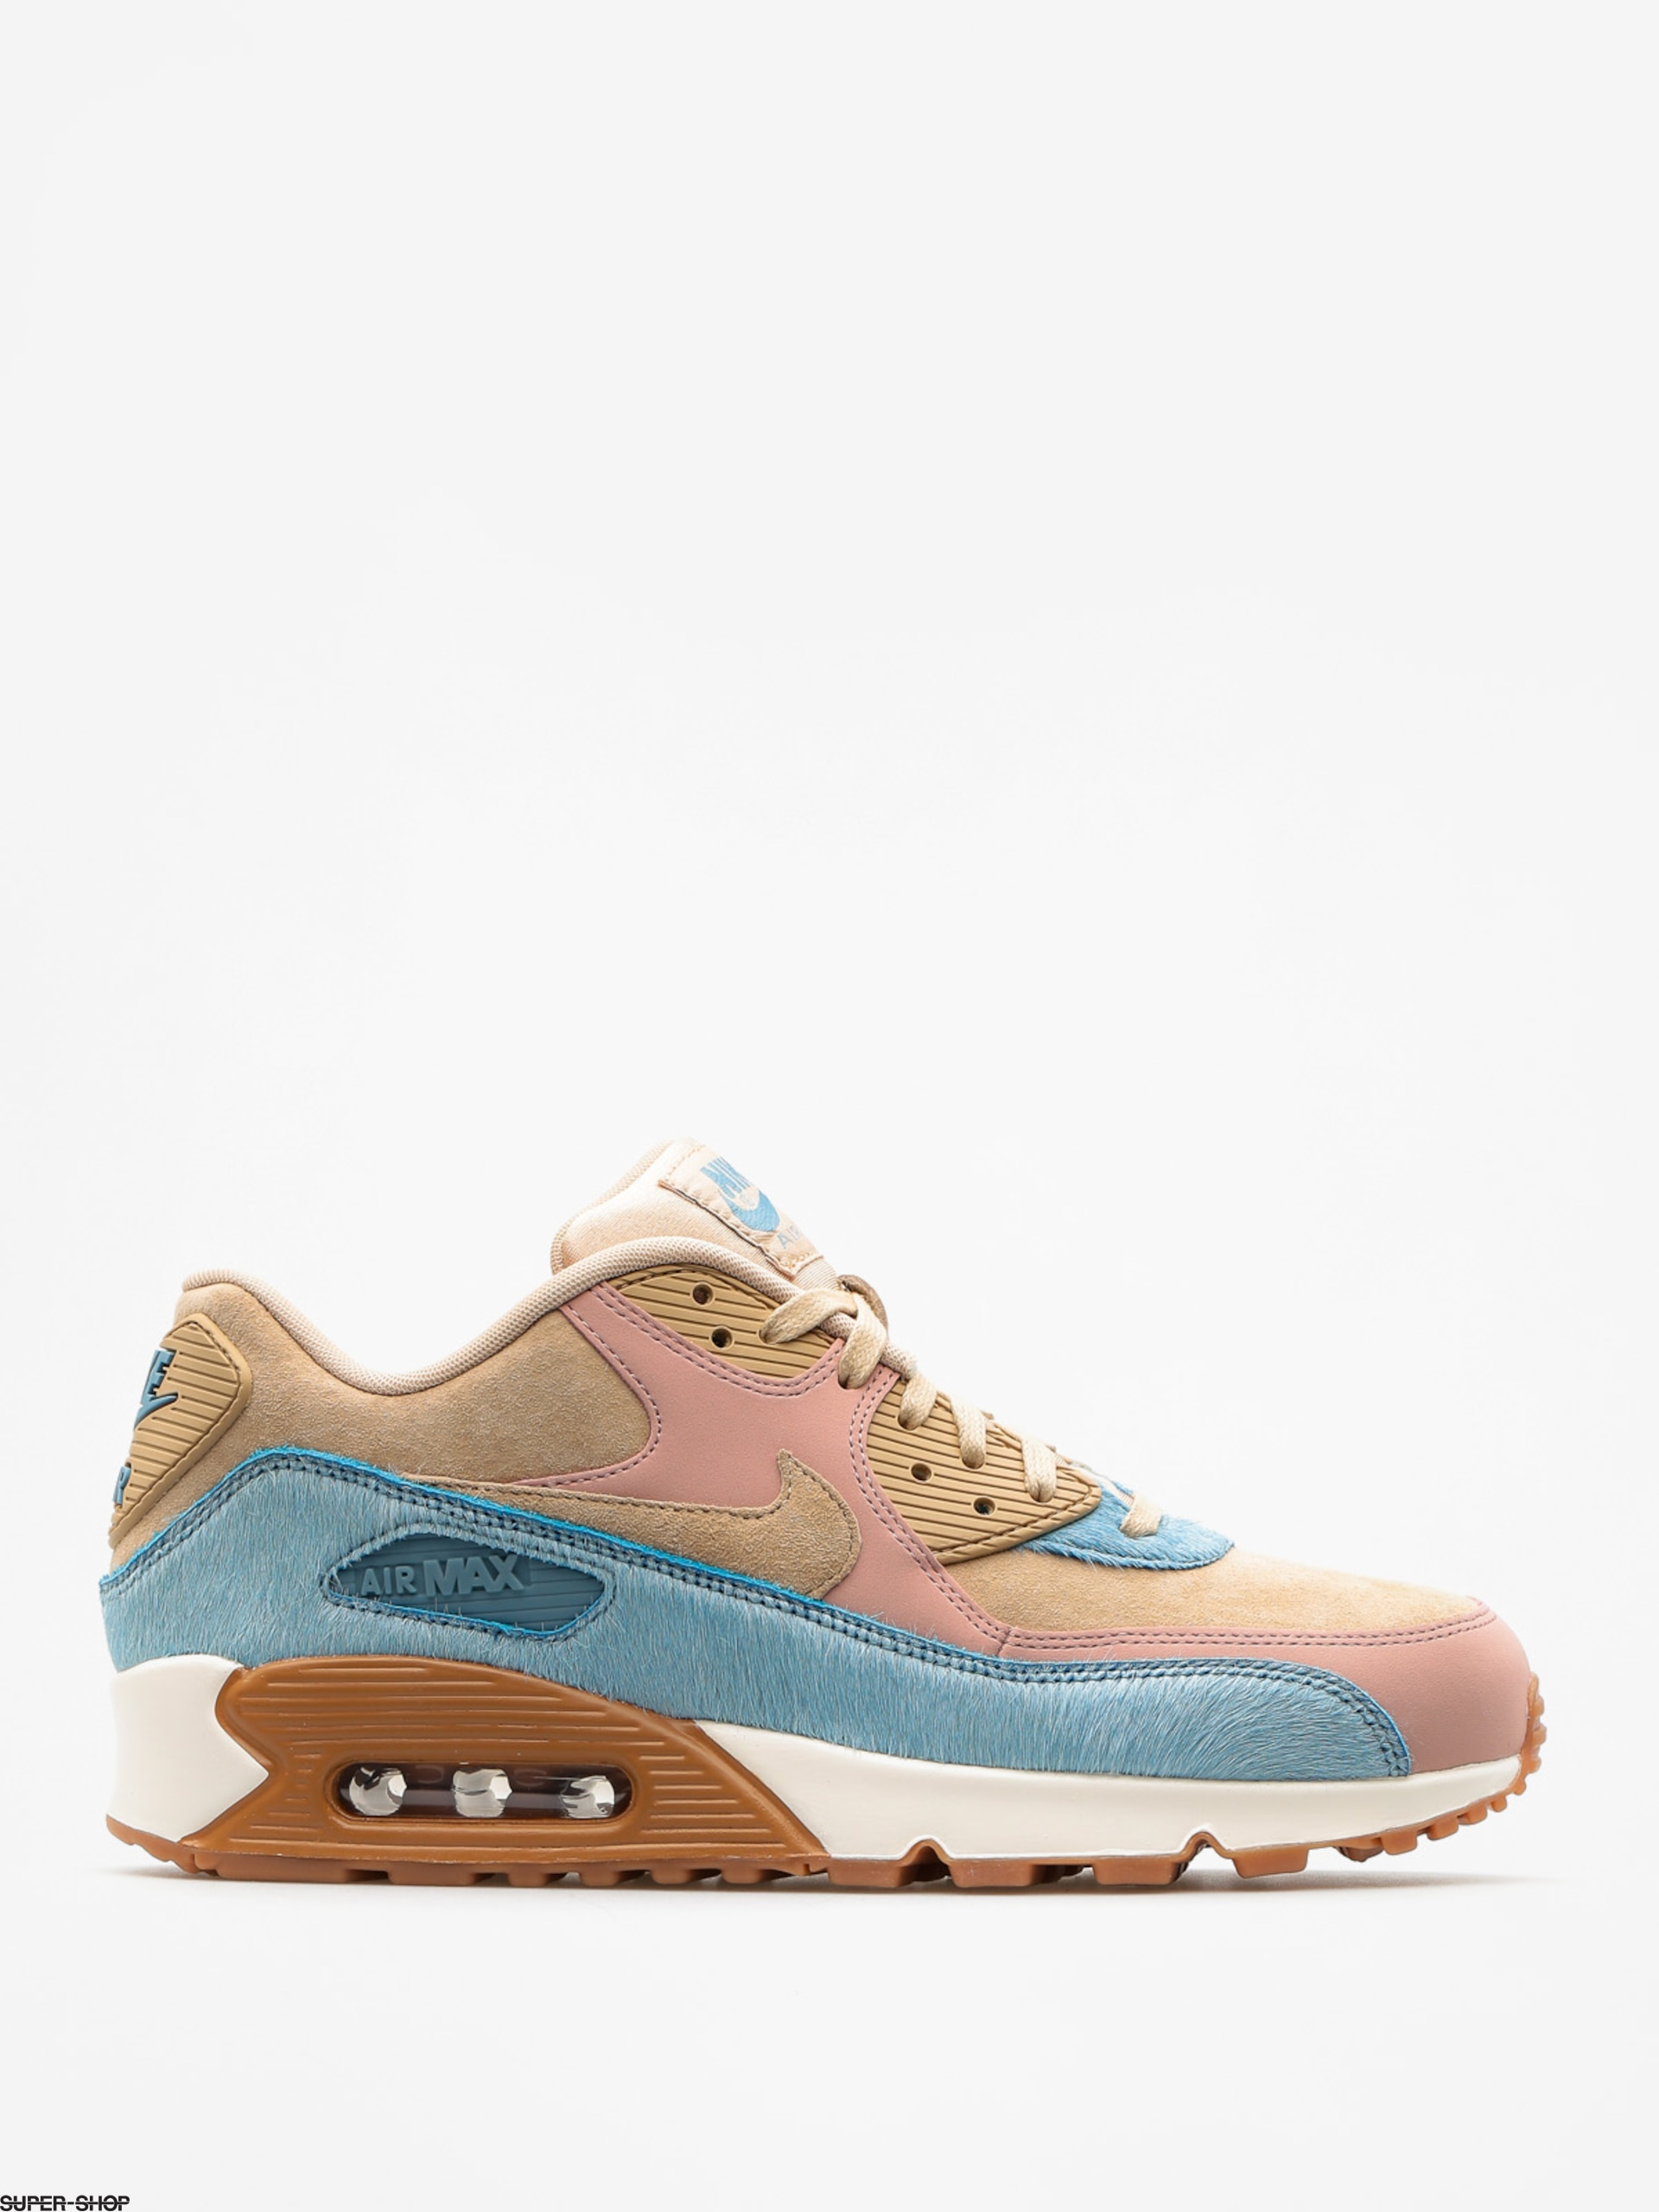 Nike Shoes Air Max 90 Lx Wmn (mushroom/mushroom smokey blue)